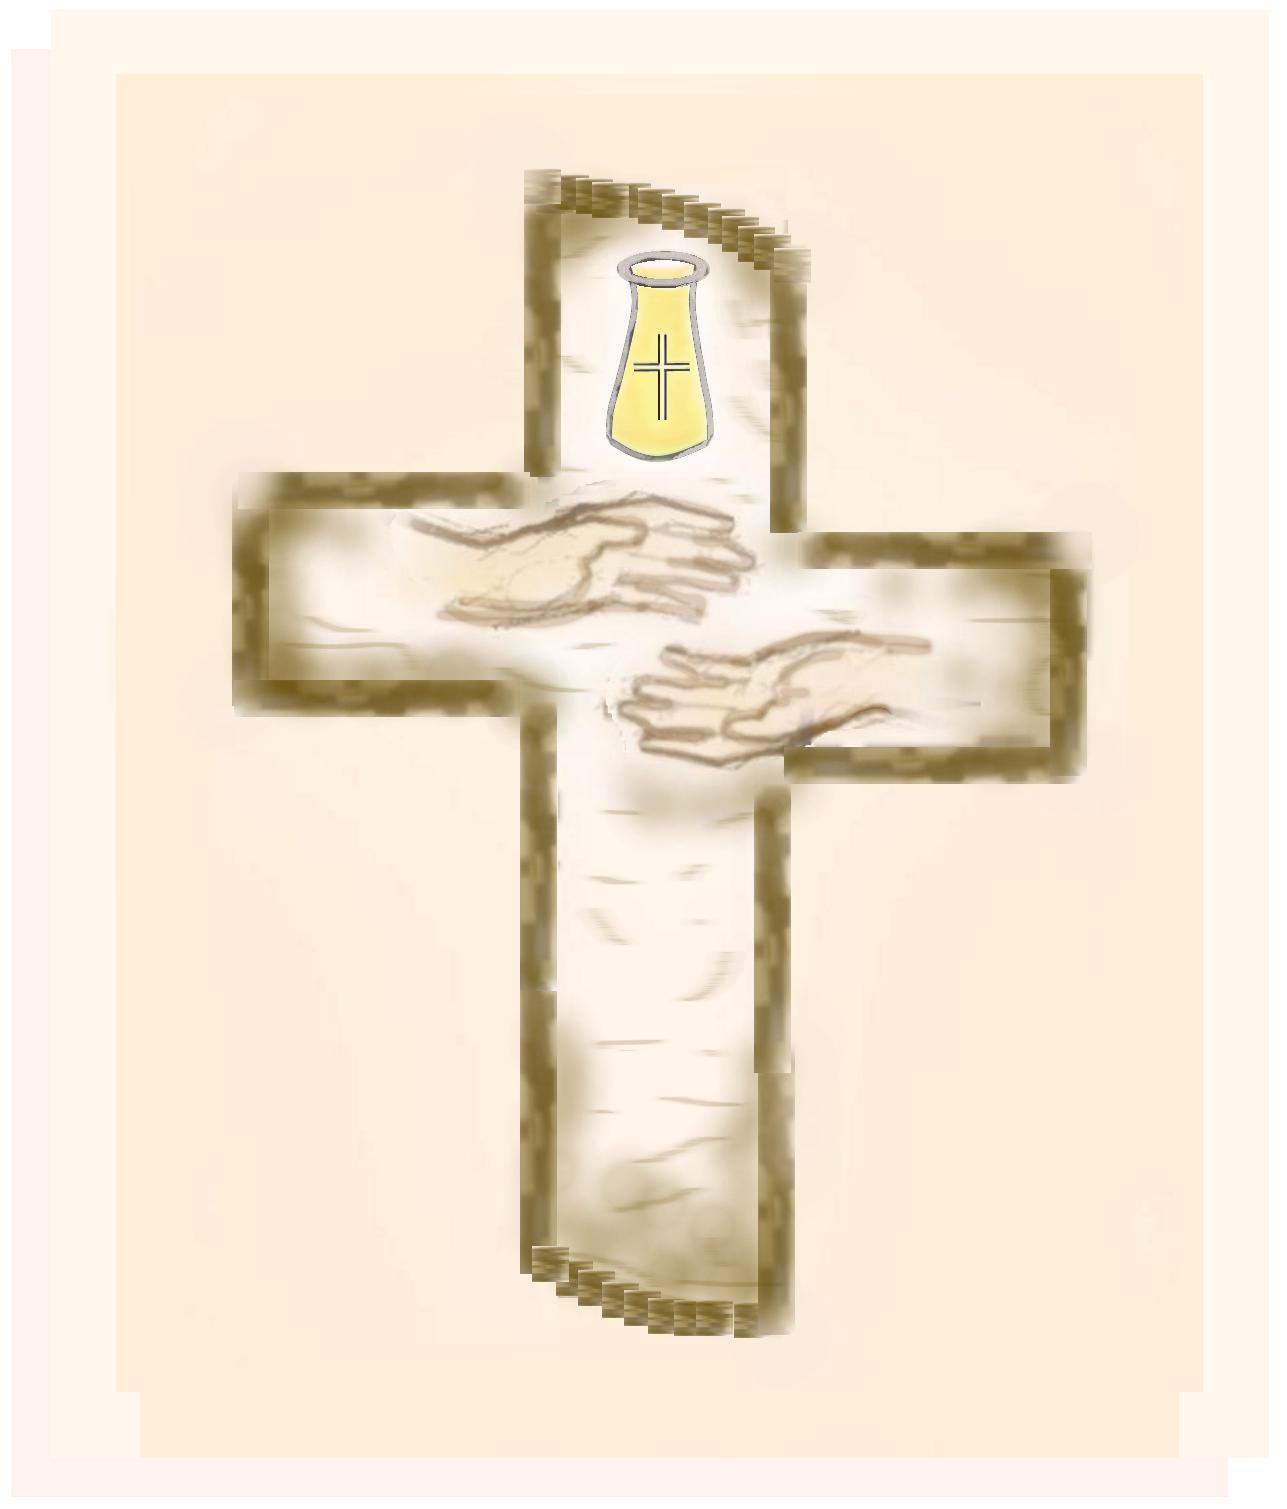 Anointing Of The Sick Clipart Of the sick clipart Catholic Anointing Of The Sick Symbols